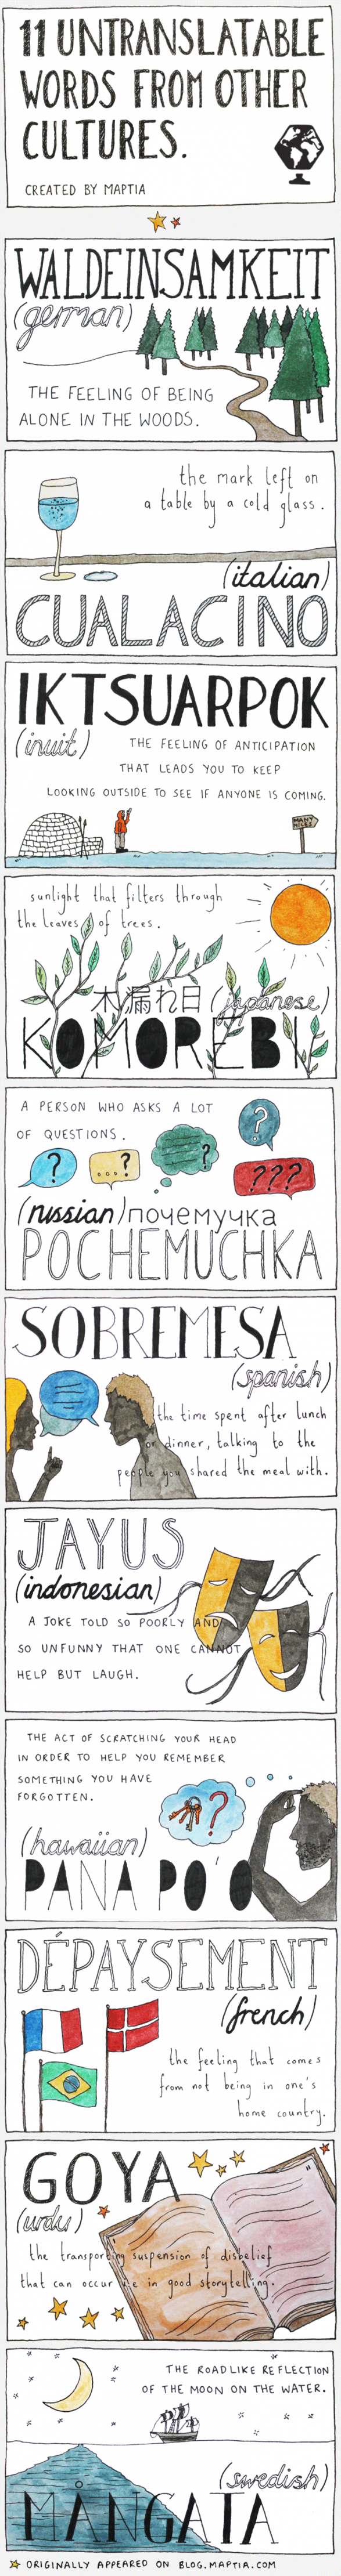 11 Untranslatable Words From Various Languages http://www.thecultureist.com/2013/08/23/11-untranslatable-words-from-various-languages/